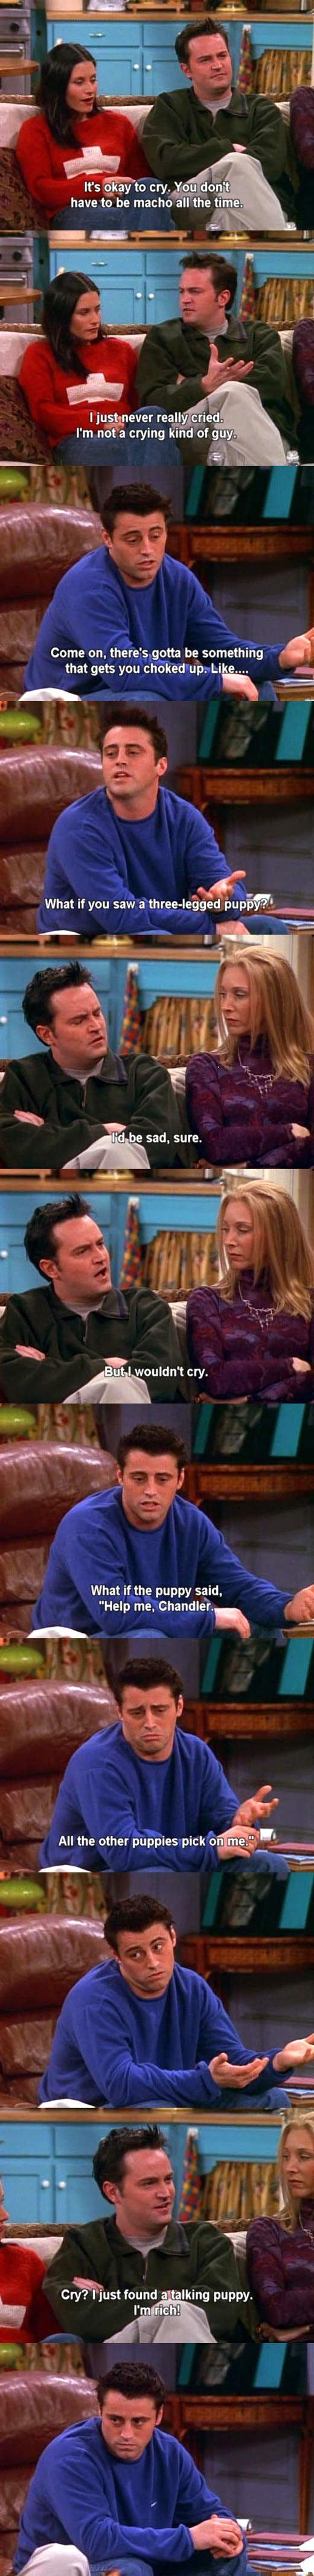 It's okay to cry, Chandler.